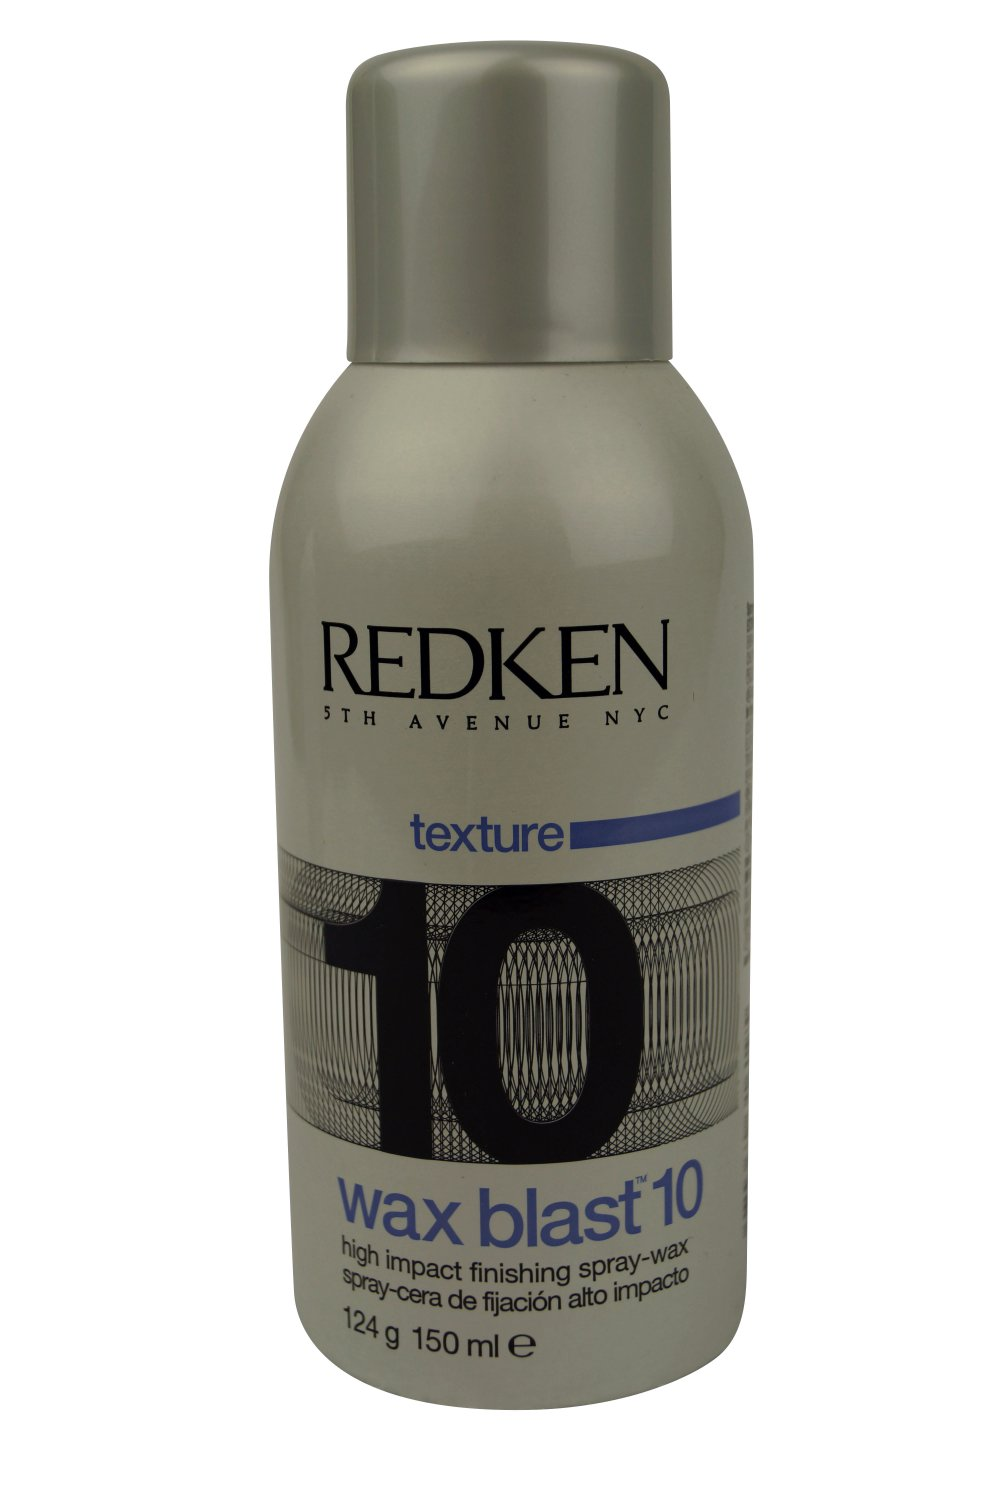 Redken Wax Blast 10 High Impact Hair Spray 150 ml